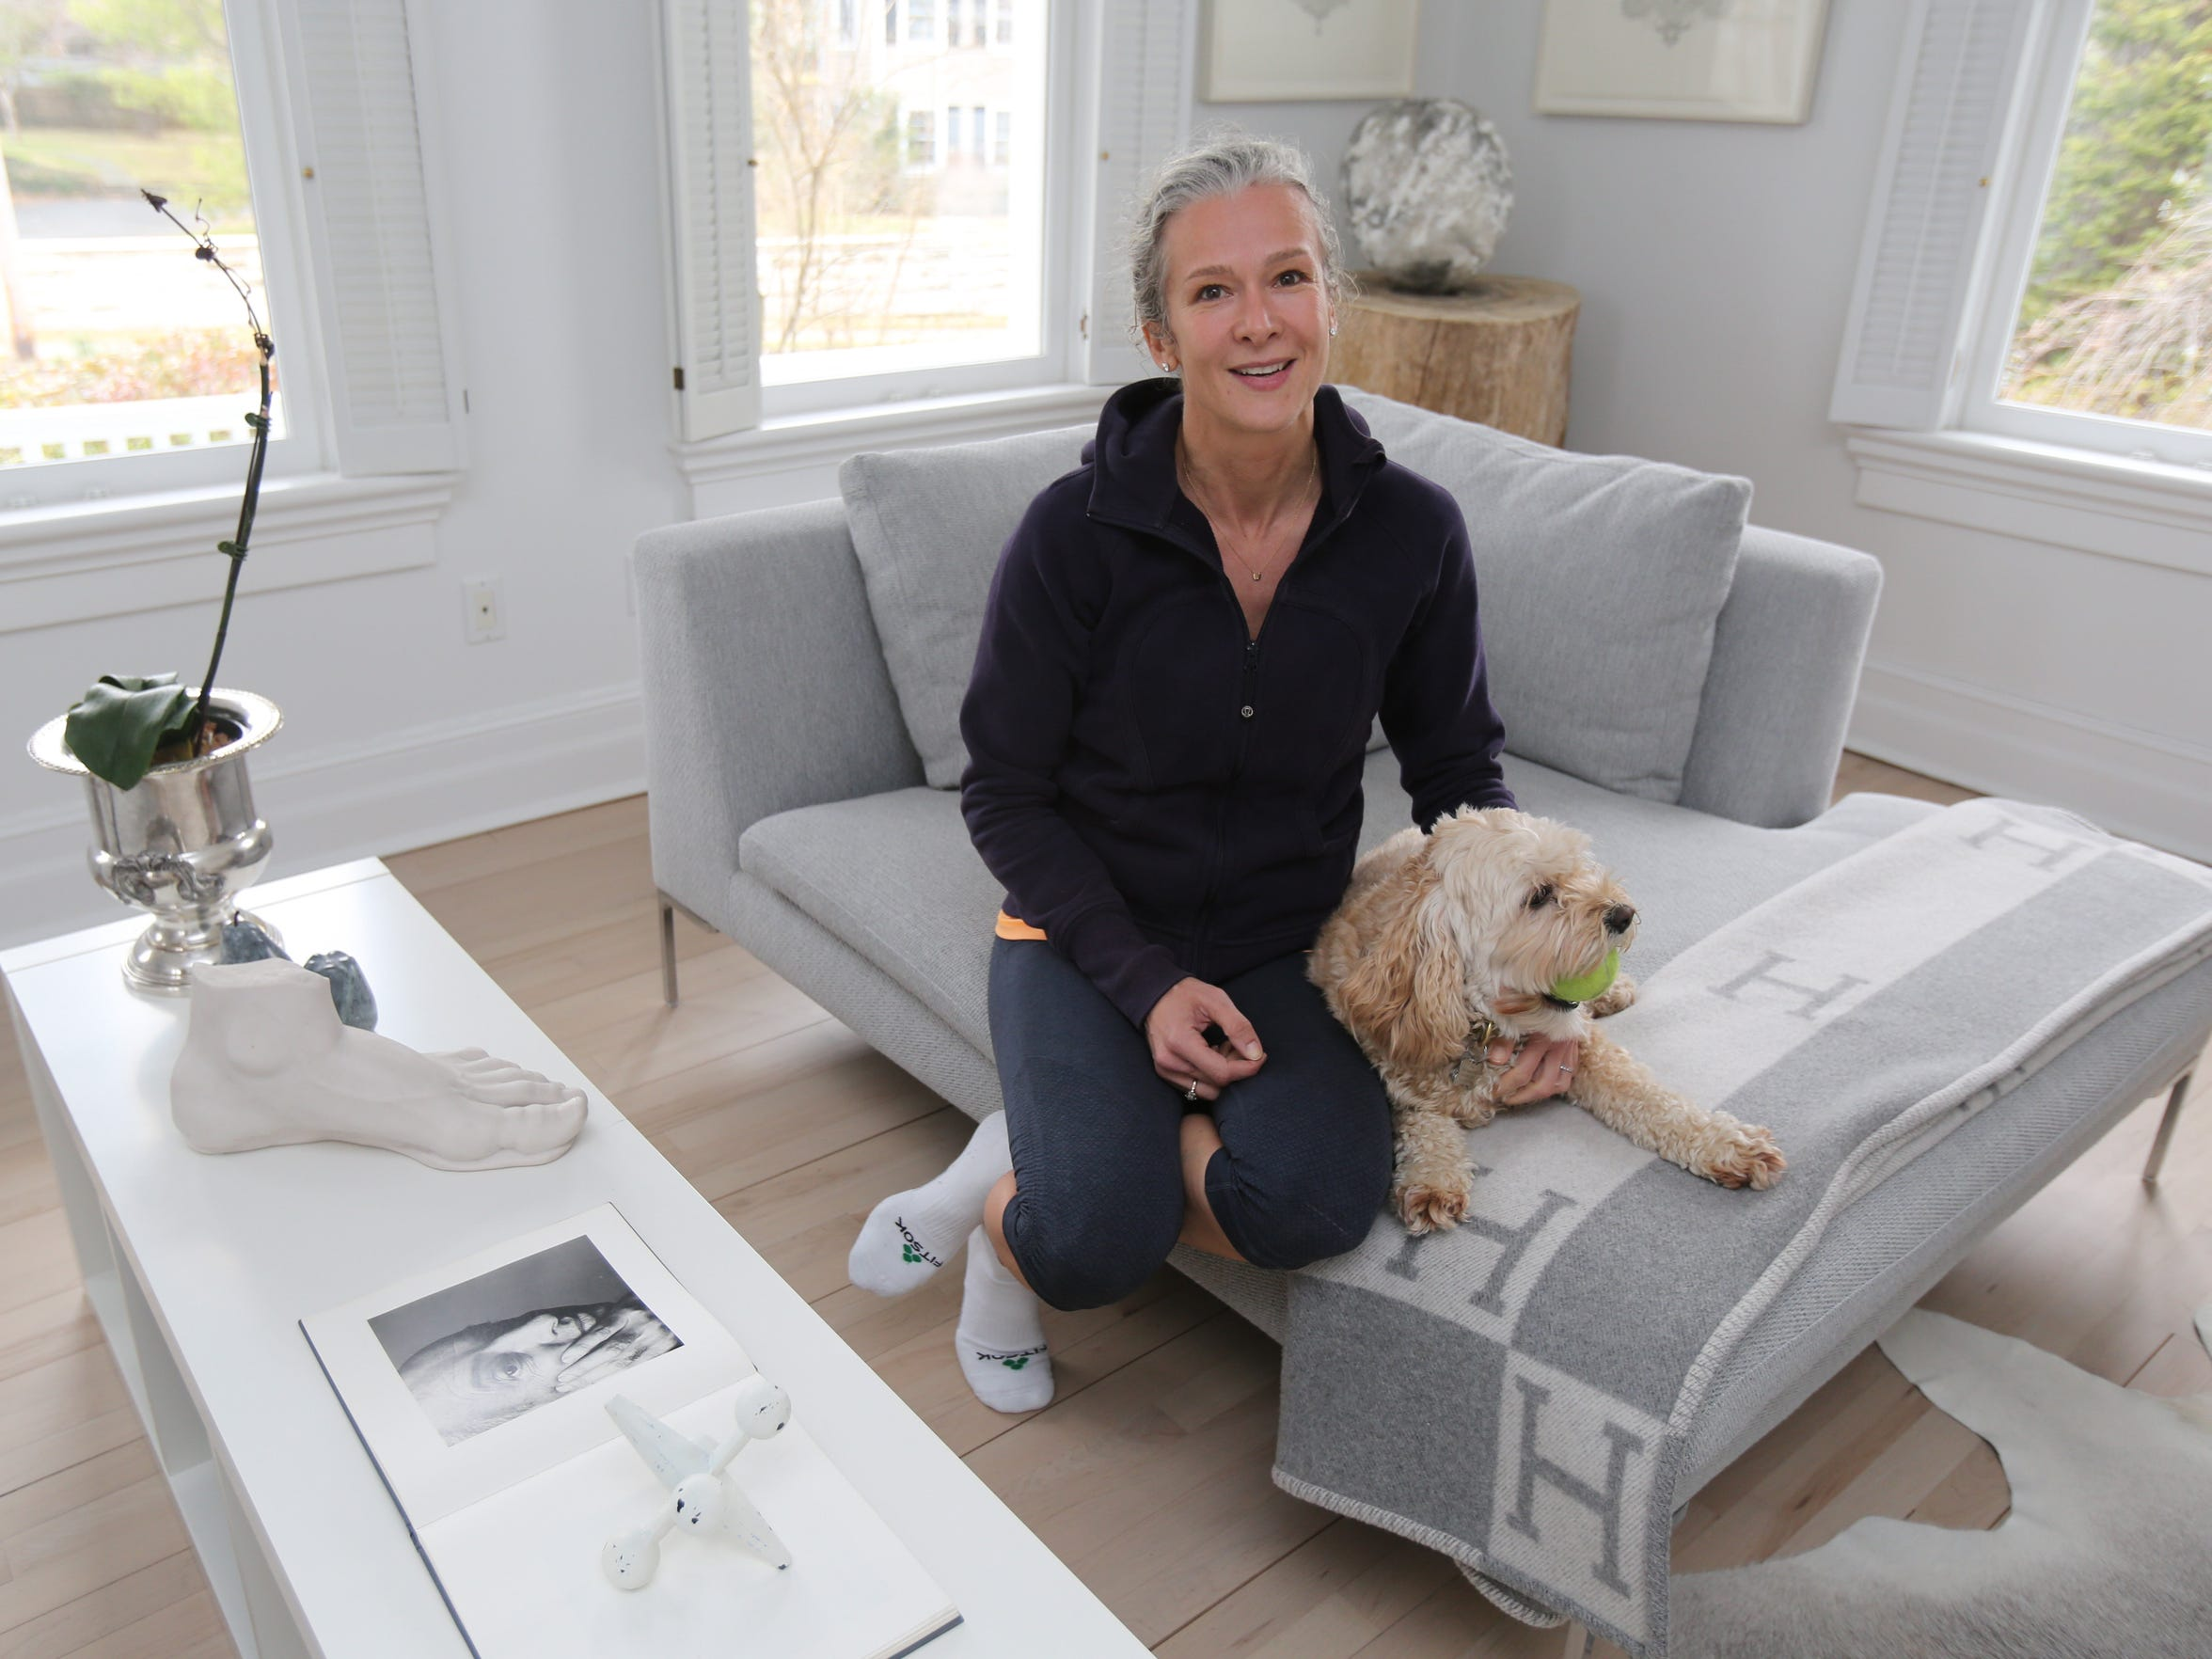 Gillian Pinchin and her dog, Lola, are pictured in